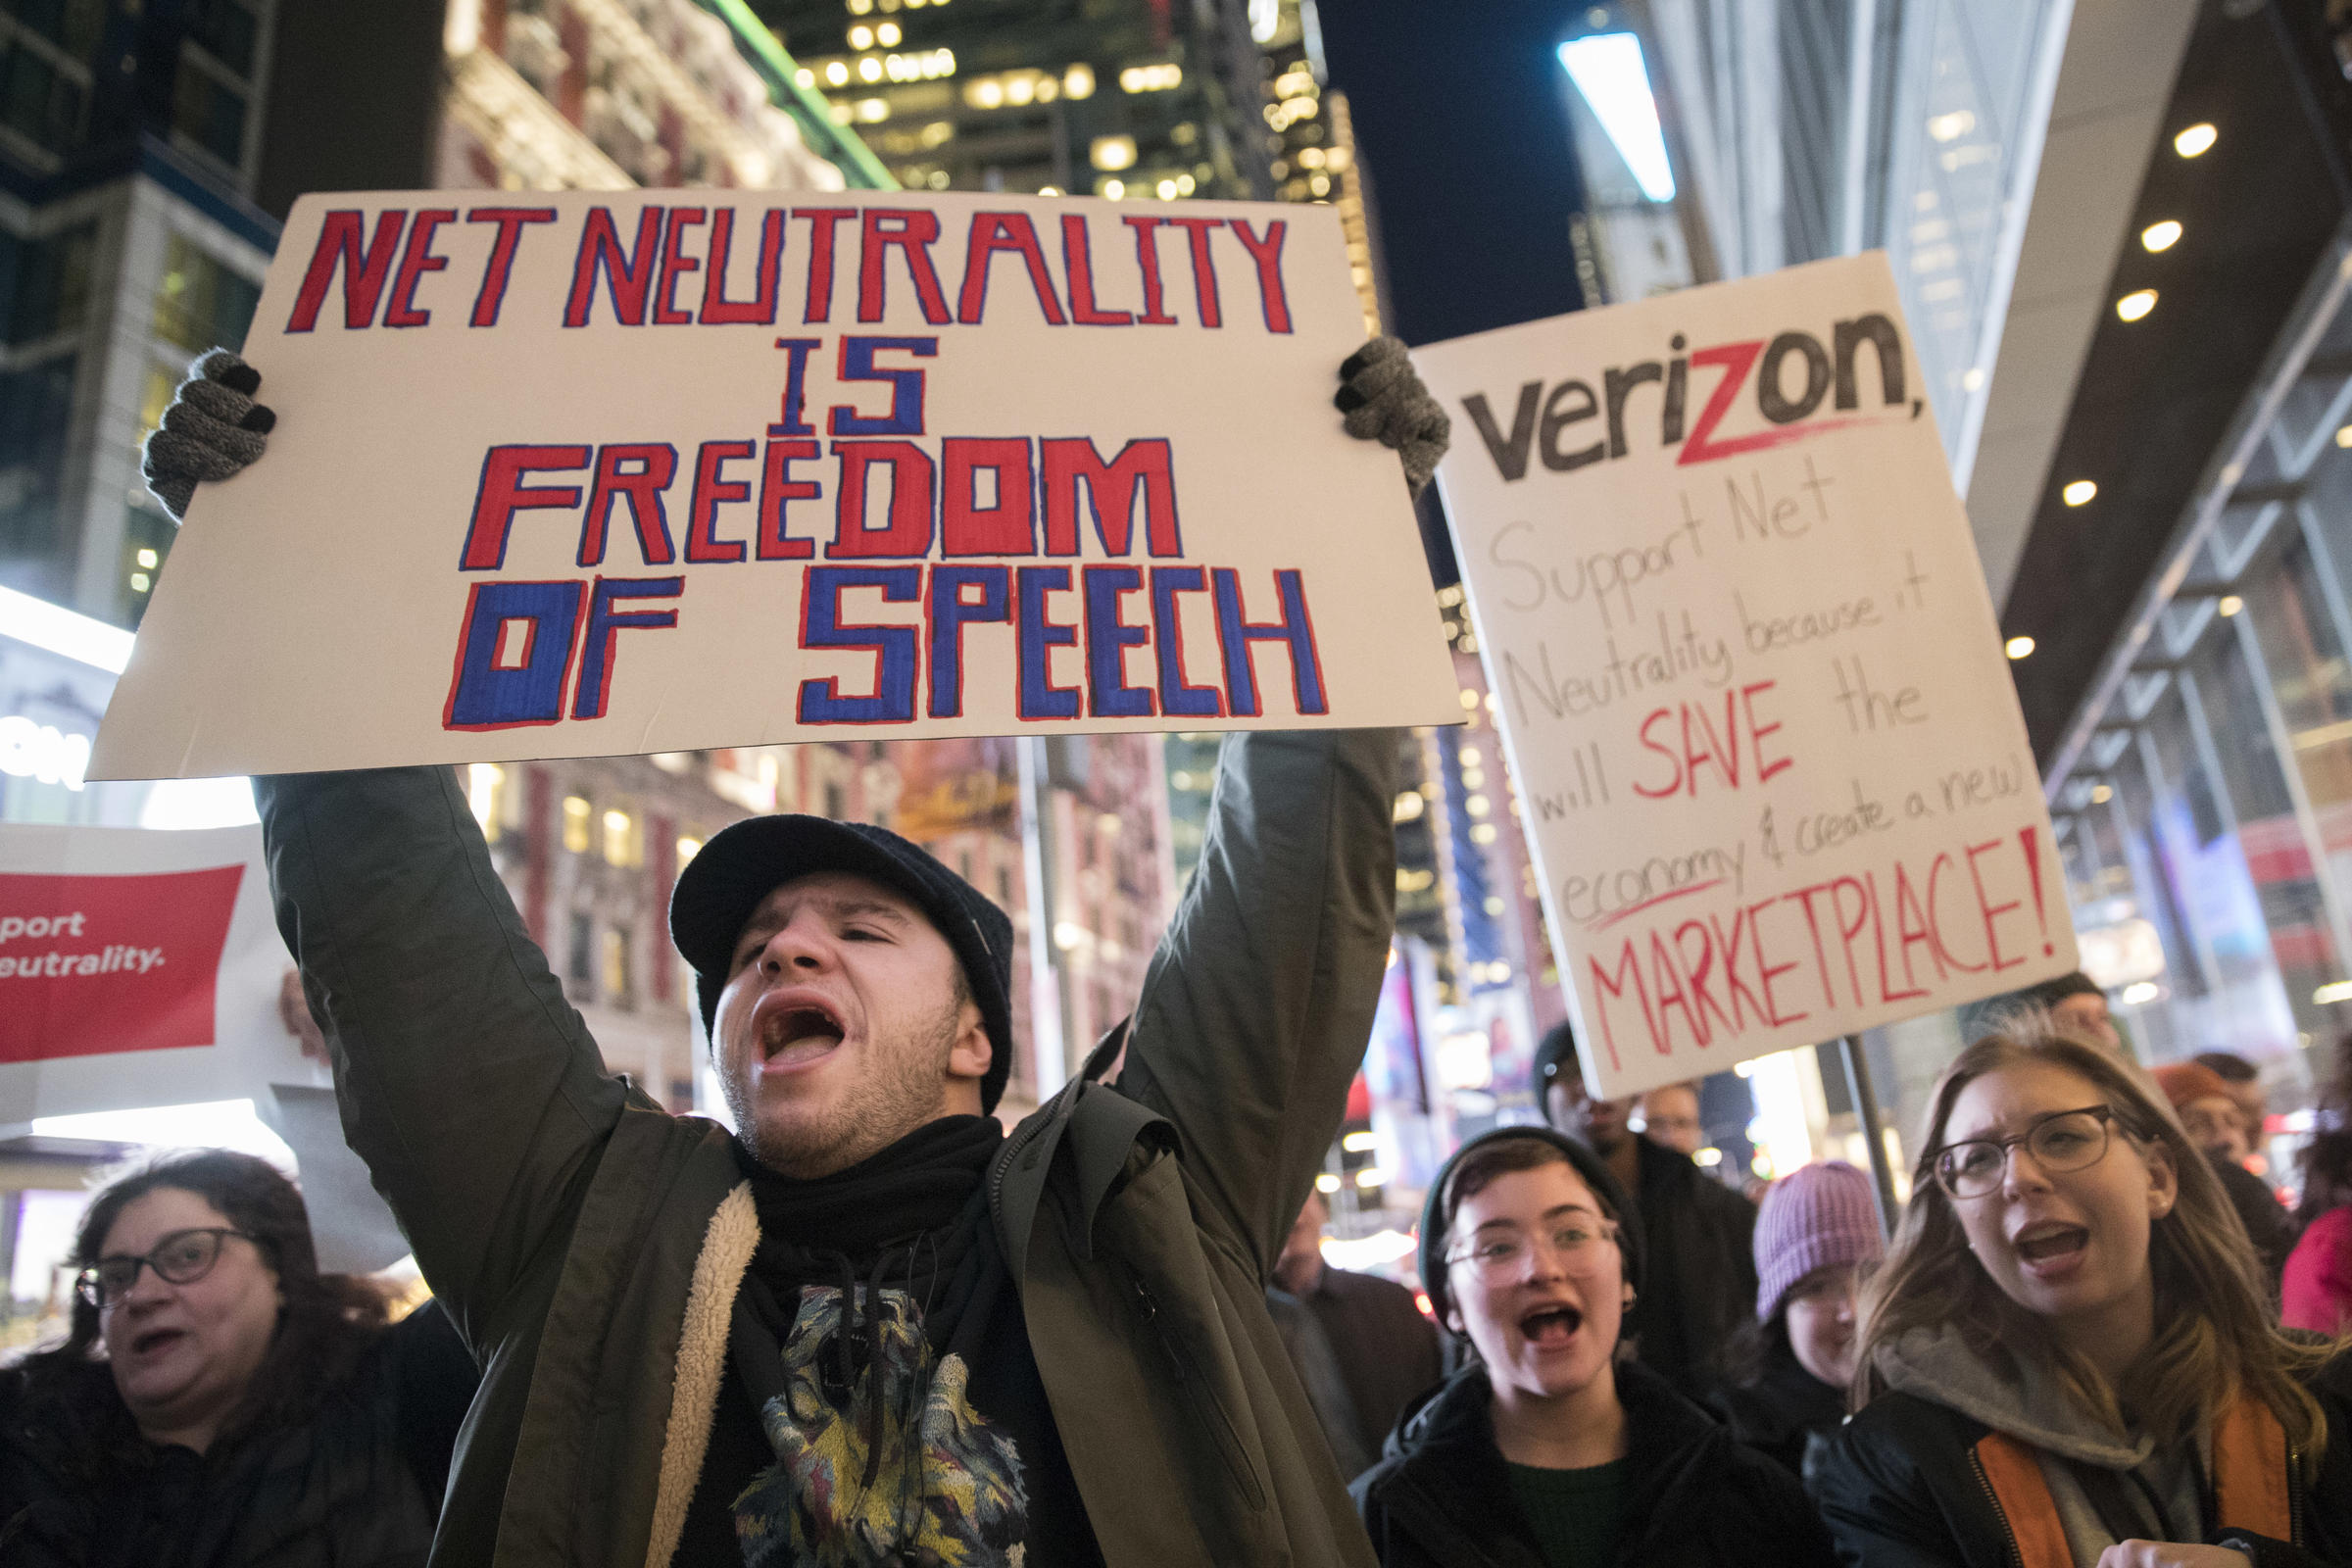 Democratic lawmakers say they're 1 vote away from restoring net neutrality